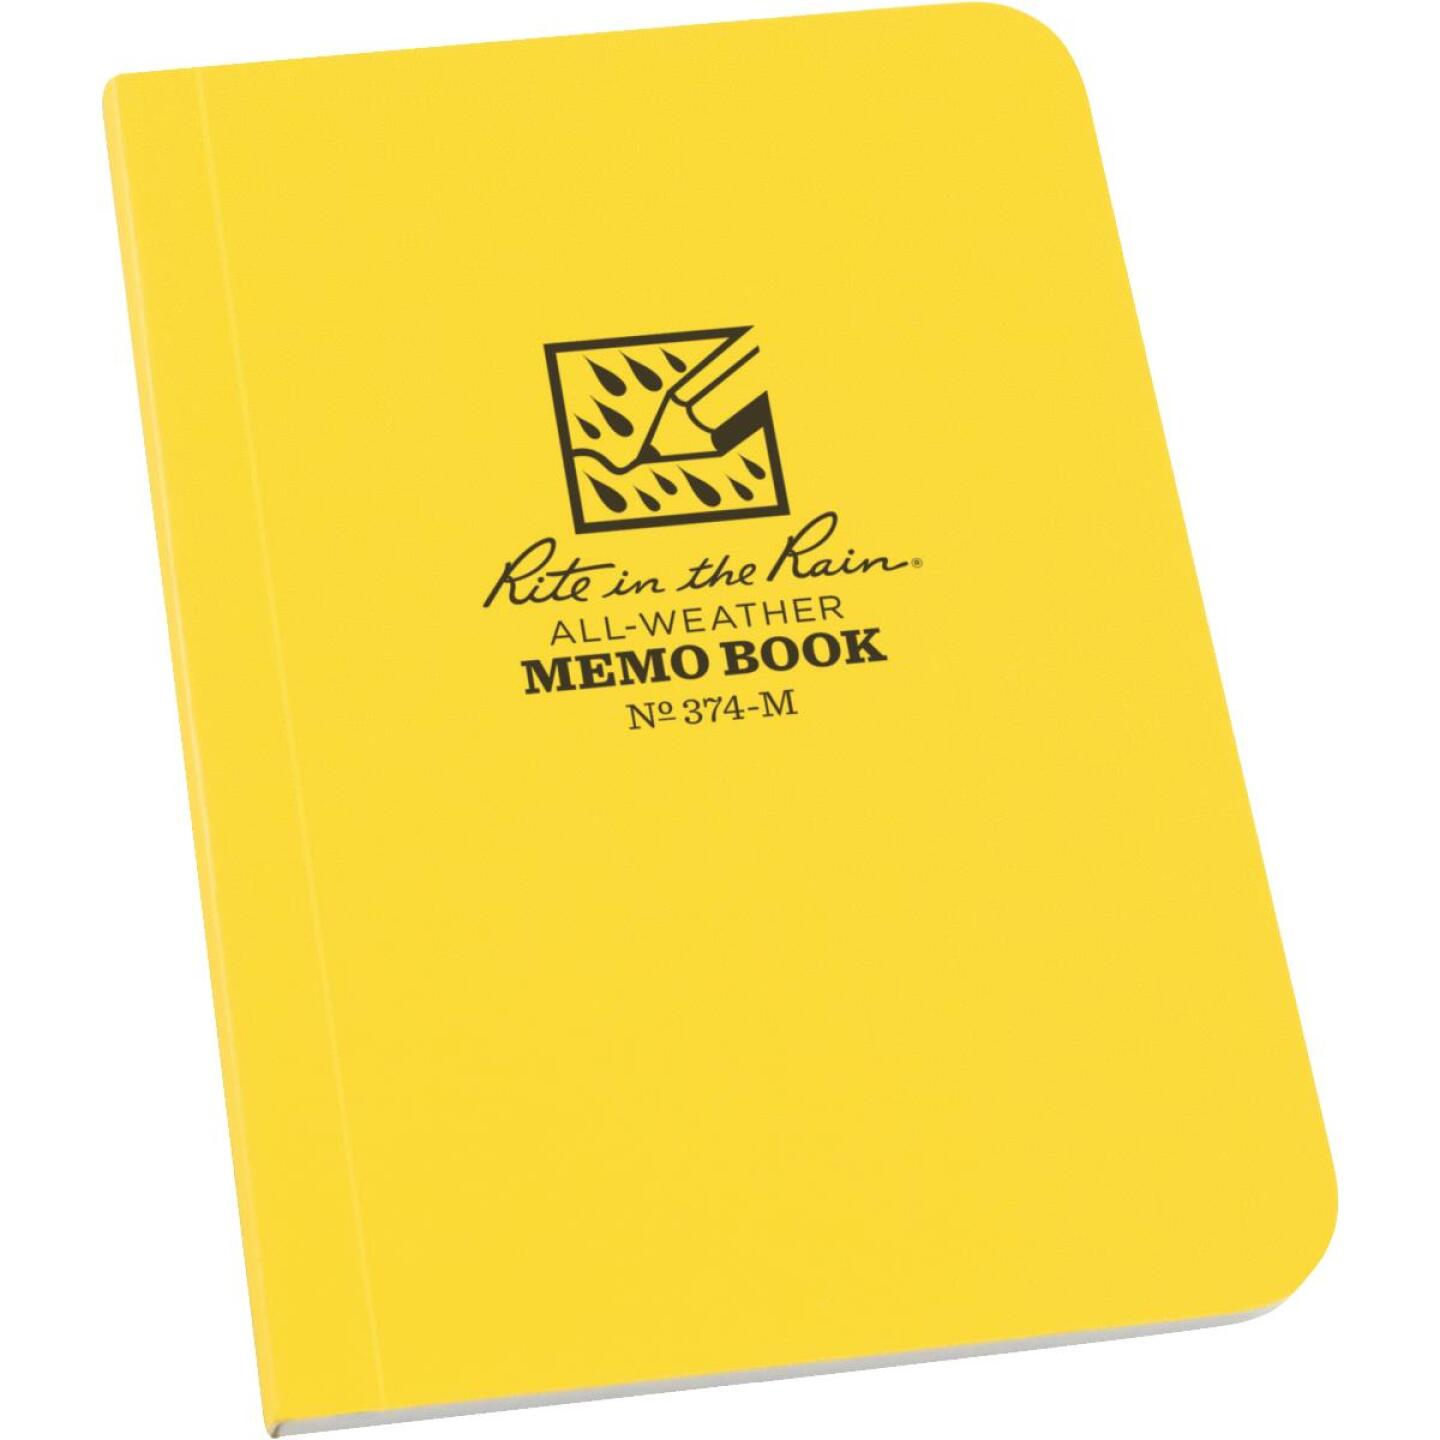 Rite in the Rain 3-1/2 In. W. x 5 In. H. Yellow 56-Sheet Soft Cover Side Bound All-Weather Memo Pad Image 1